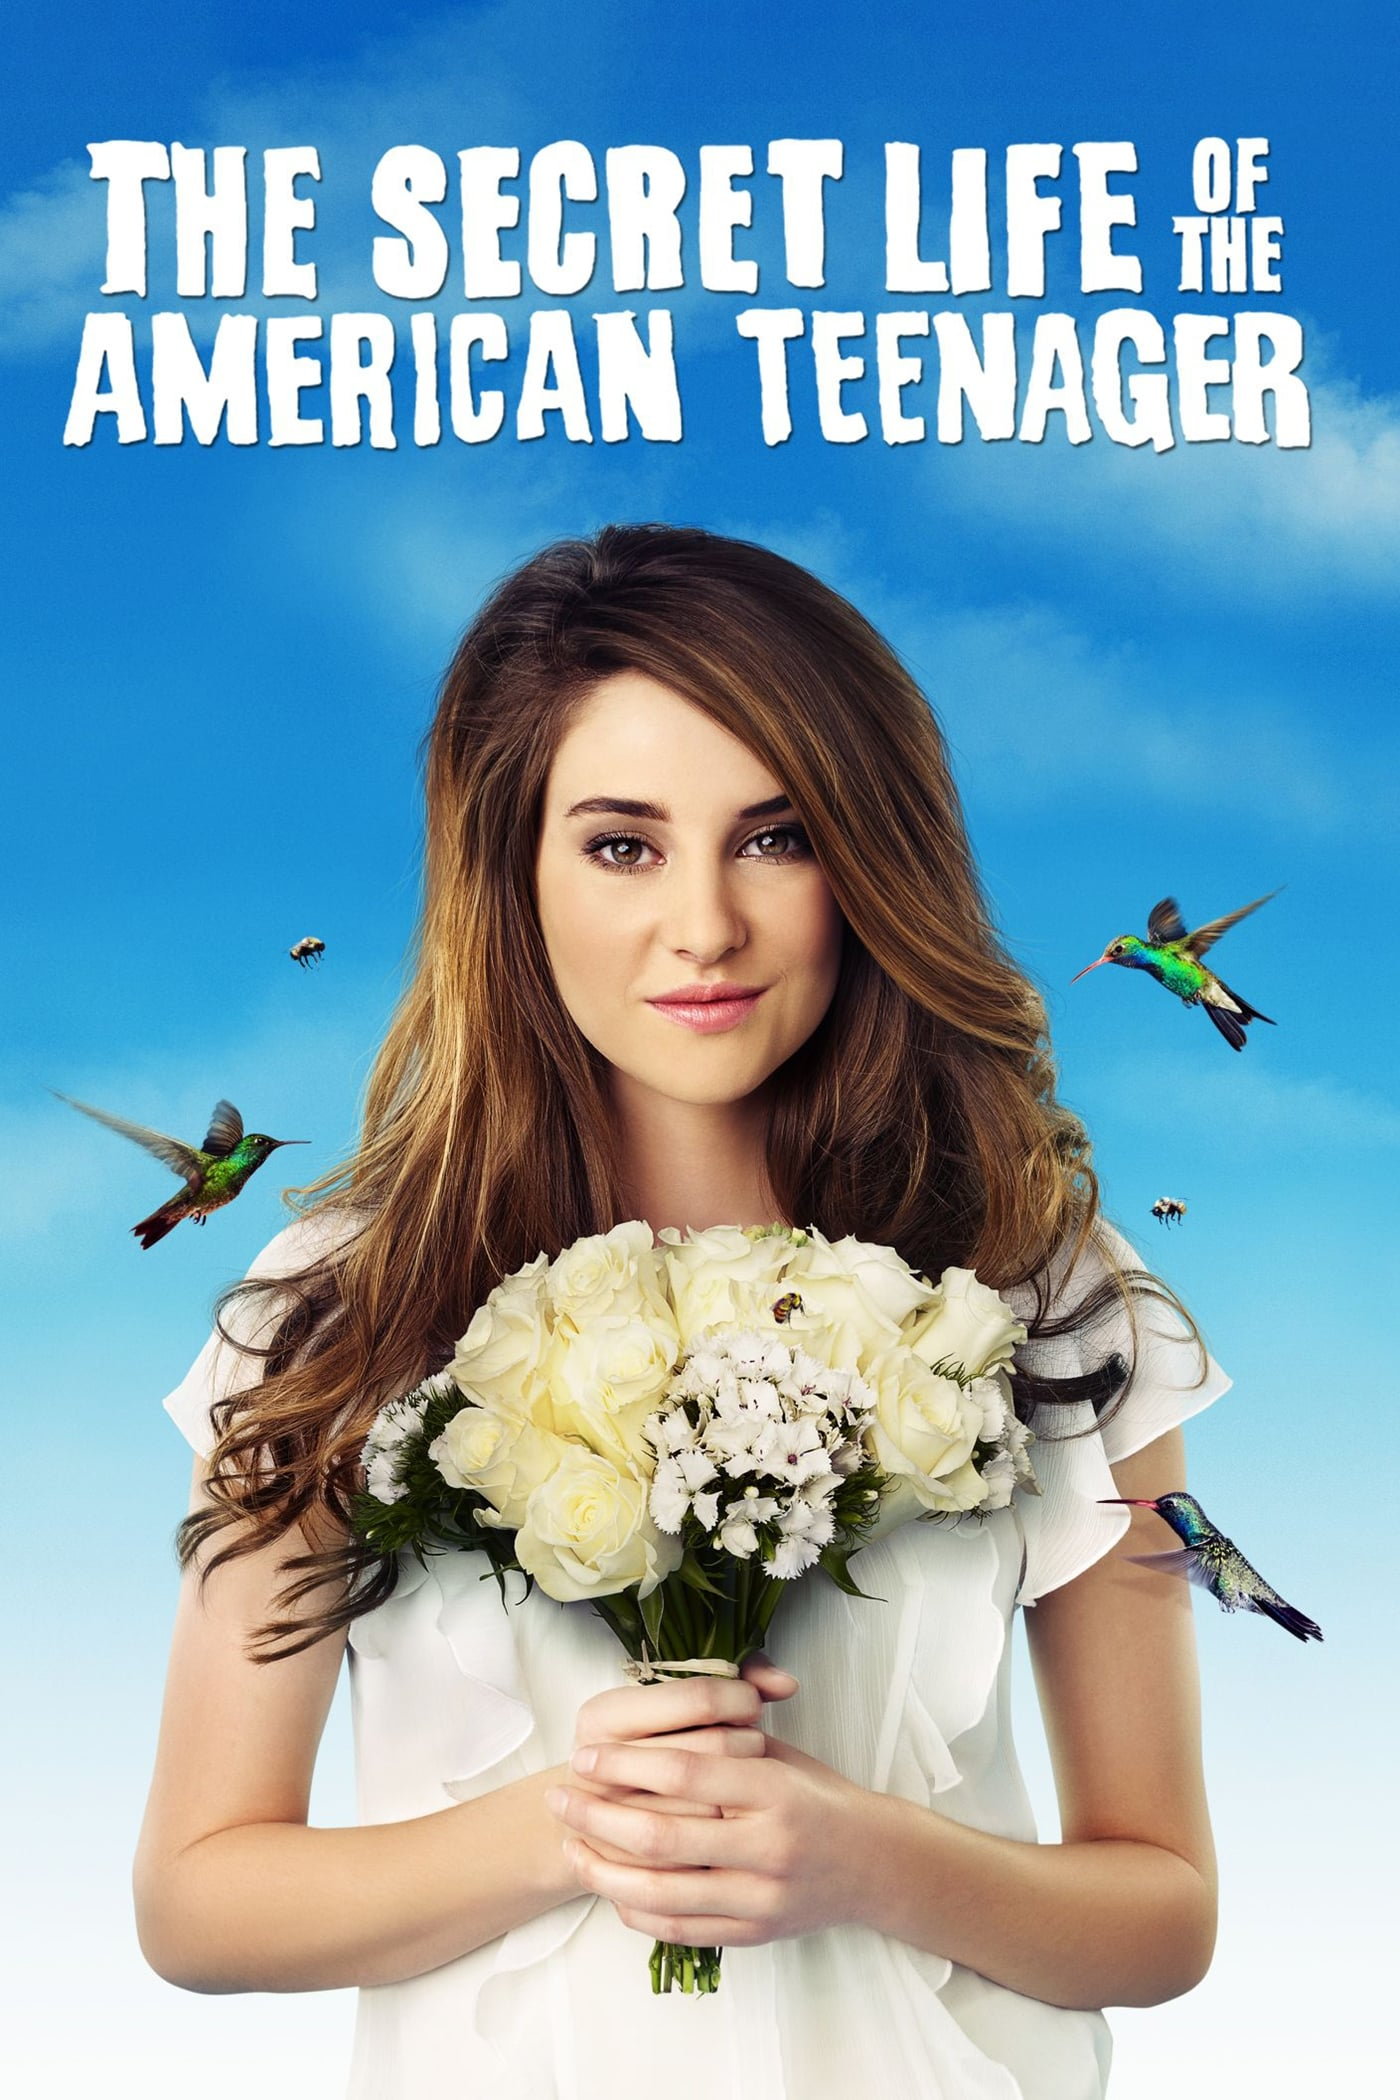 The Secret Life of the American Teenager (2008)